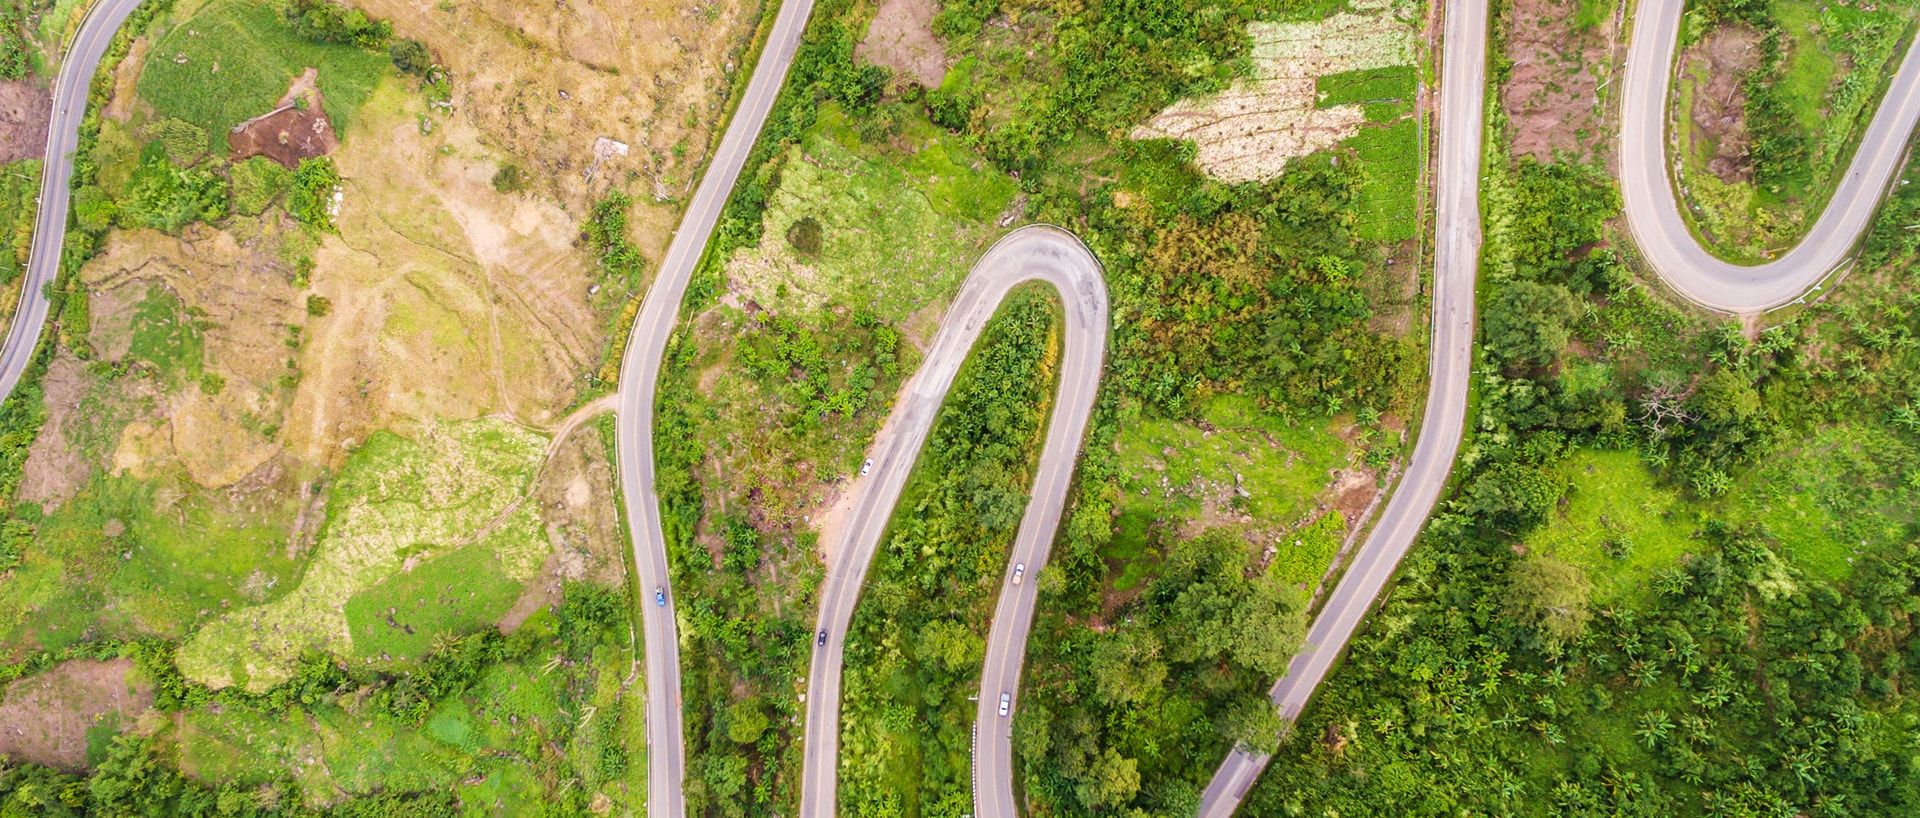 Aerial view of multiple roads